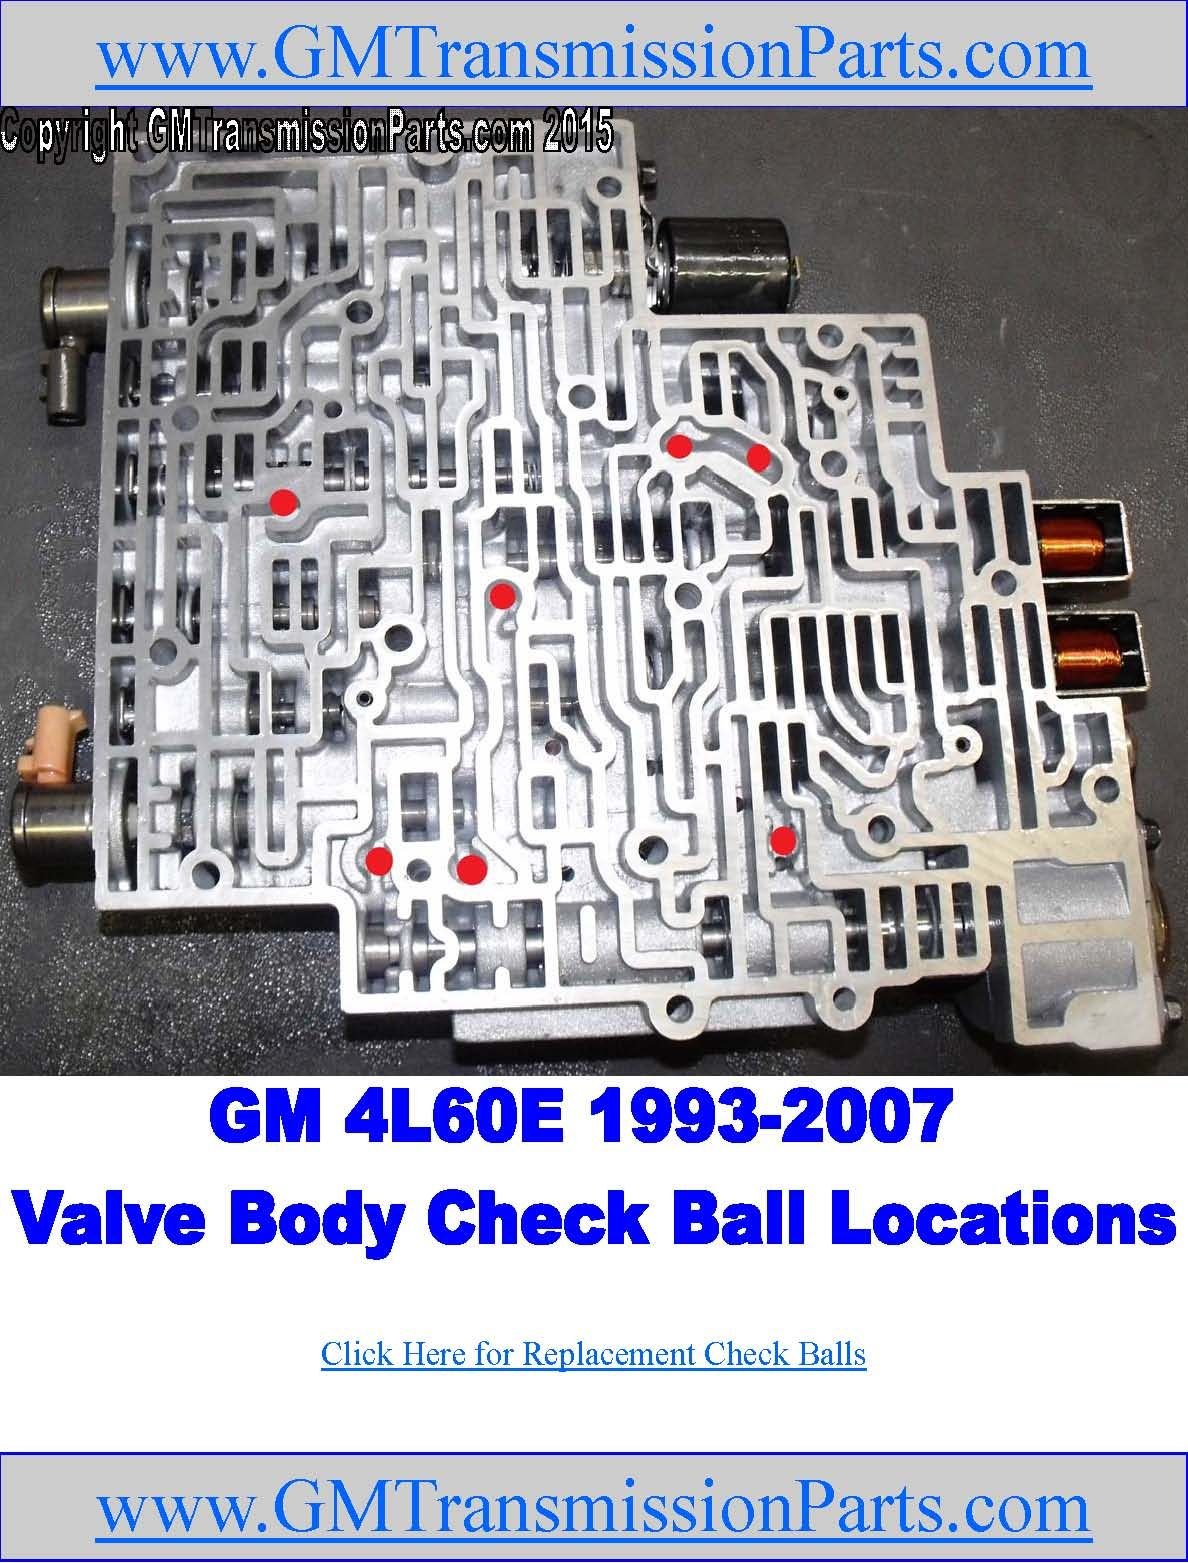 small resolution of check ball locations in gm s 4l60e transmission valve bodies there are a total of 7 check balls used in valve bodies 1993 2007 get replacement balls from